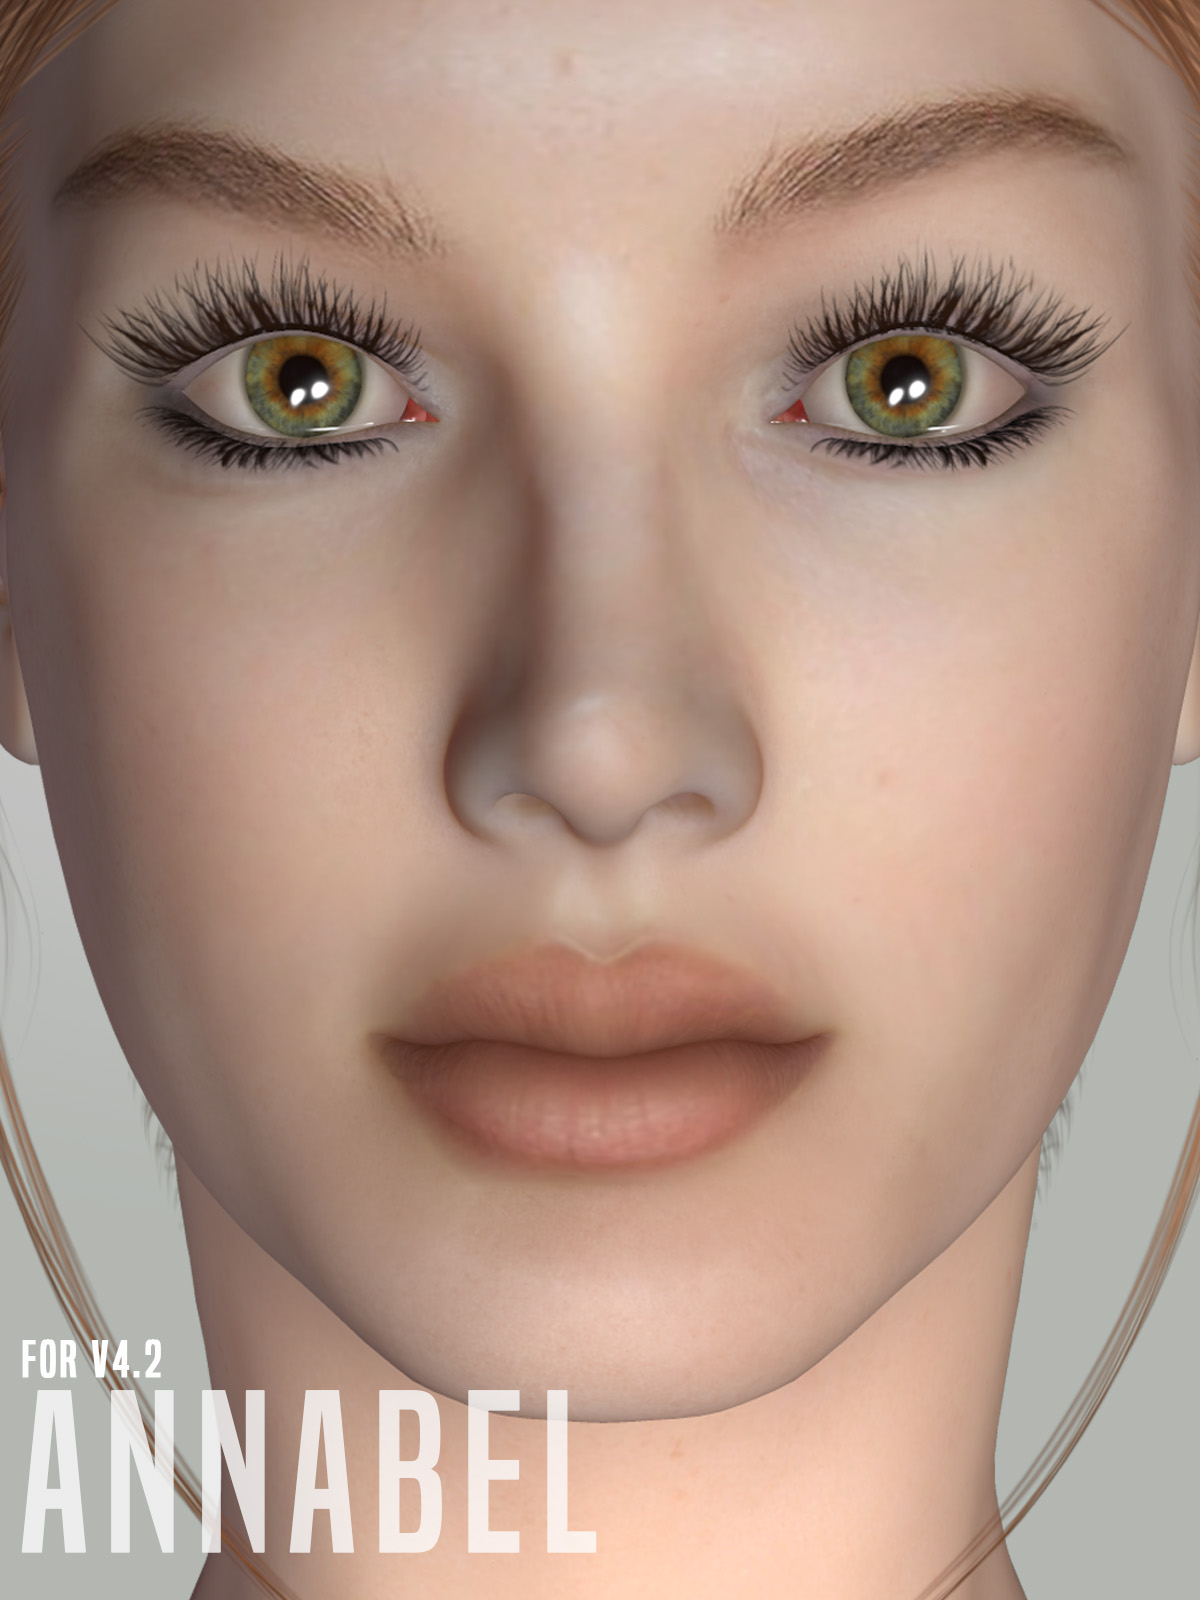 Annabel for V4.2 by xtrart-3d